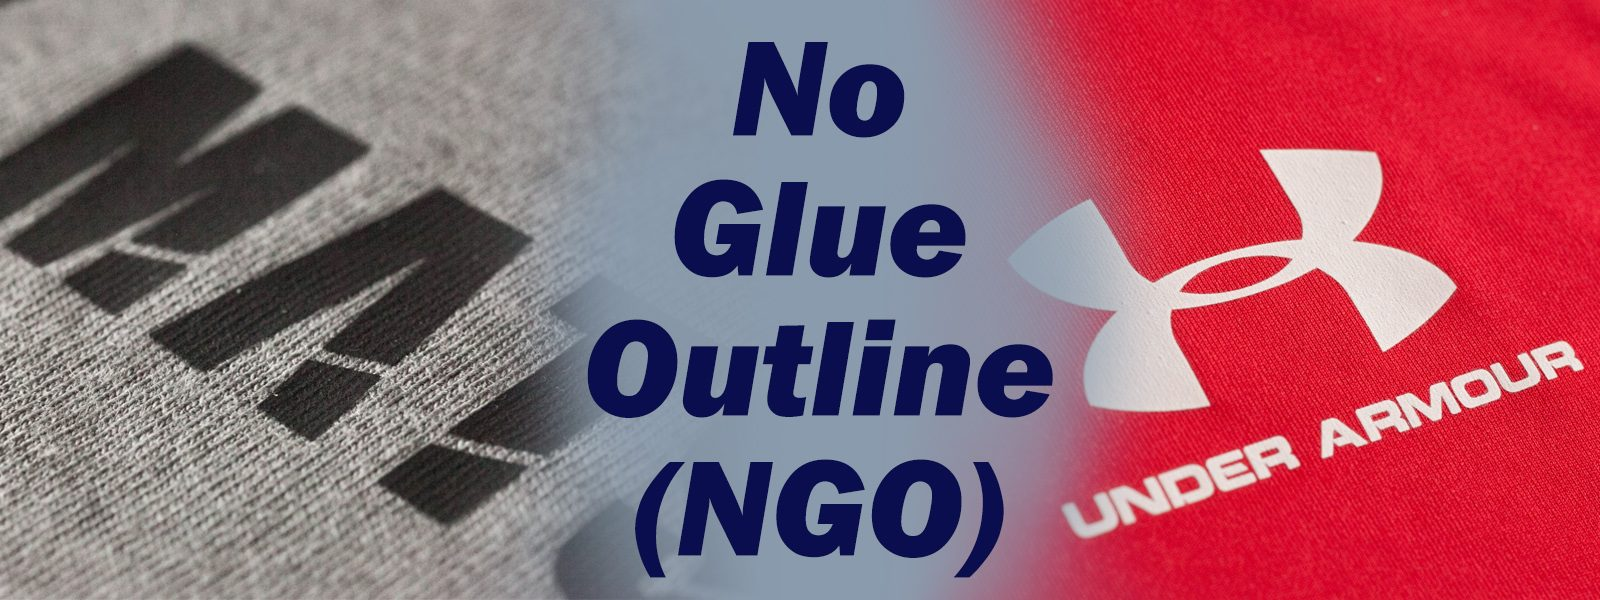 no-outline-glue